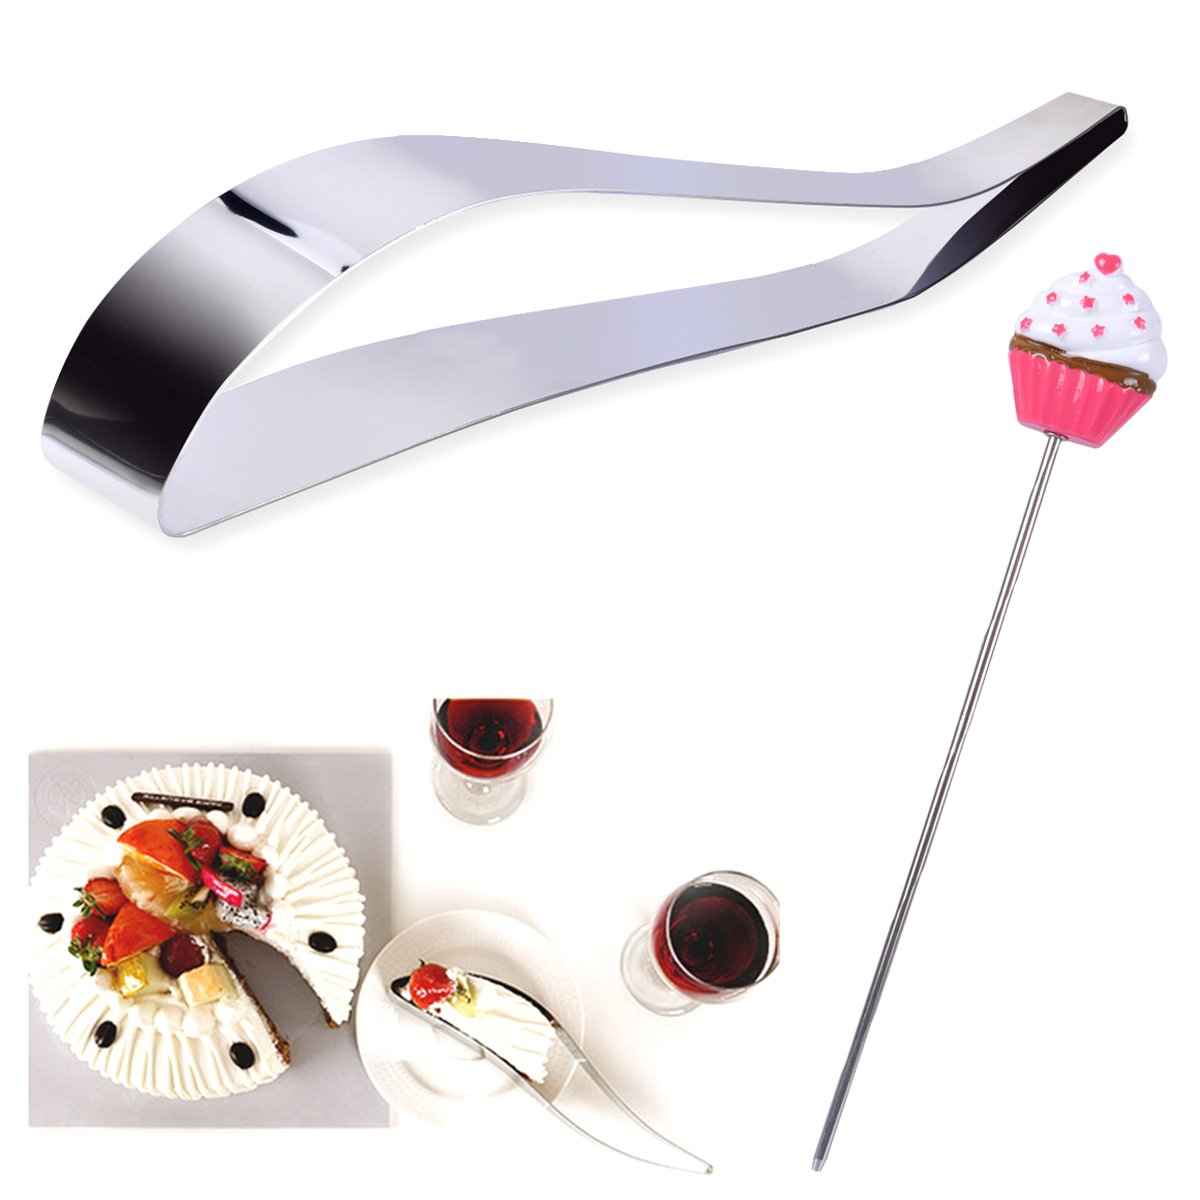 Cake Splitter Blade Creative Cake Server Cutter Set by PROKITCHEN with Cake Tester Perfect for Most Cakes, Pies, and Pastries, Stainless Steel